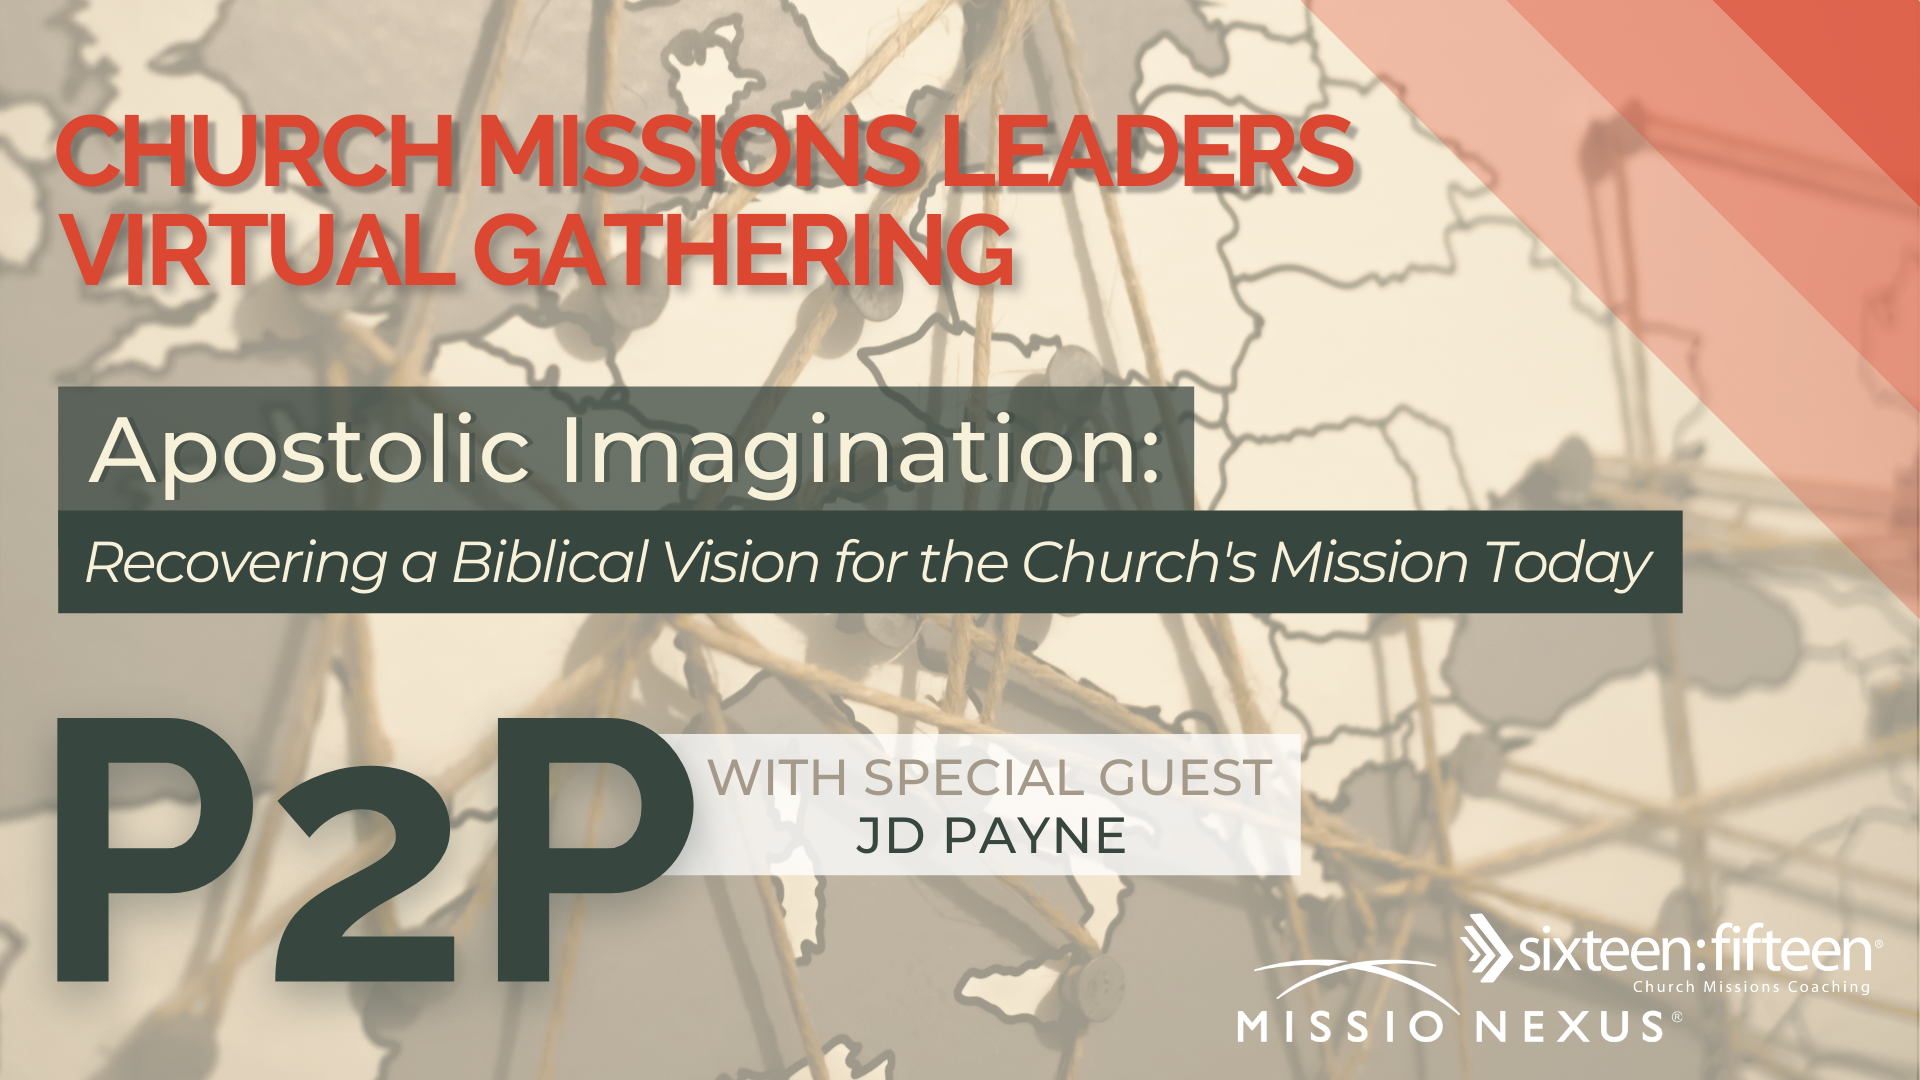 June 2, 2021 | P2P Gathering | Apostolic Imagination: Recovering a Biblical Vision for the Church's Mission Today